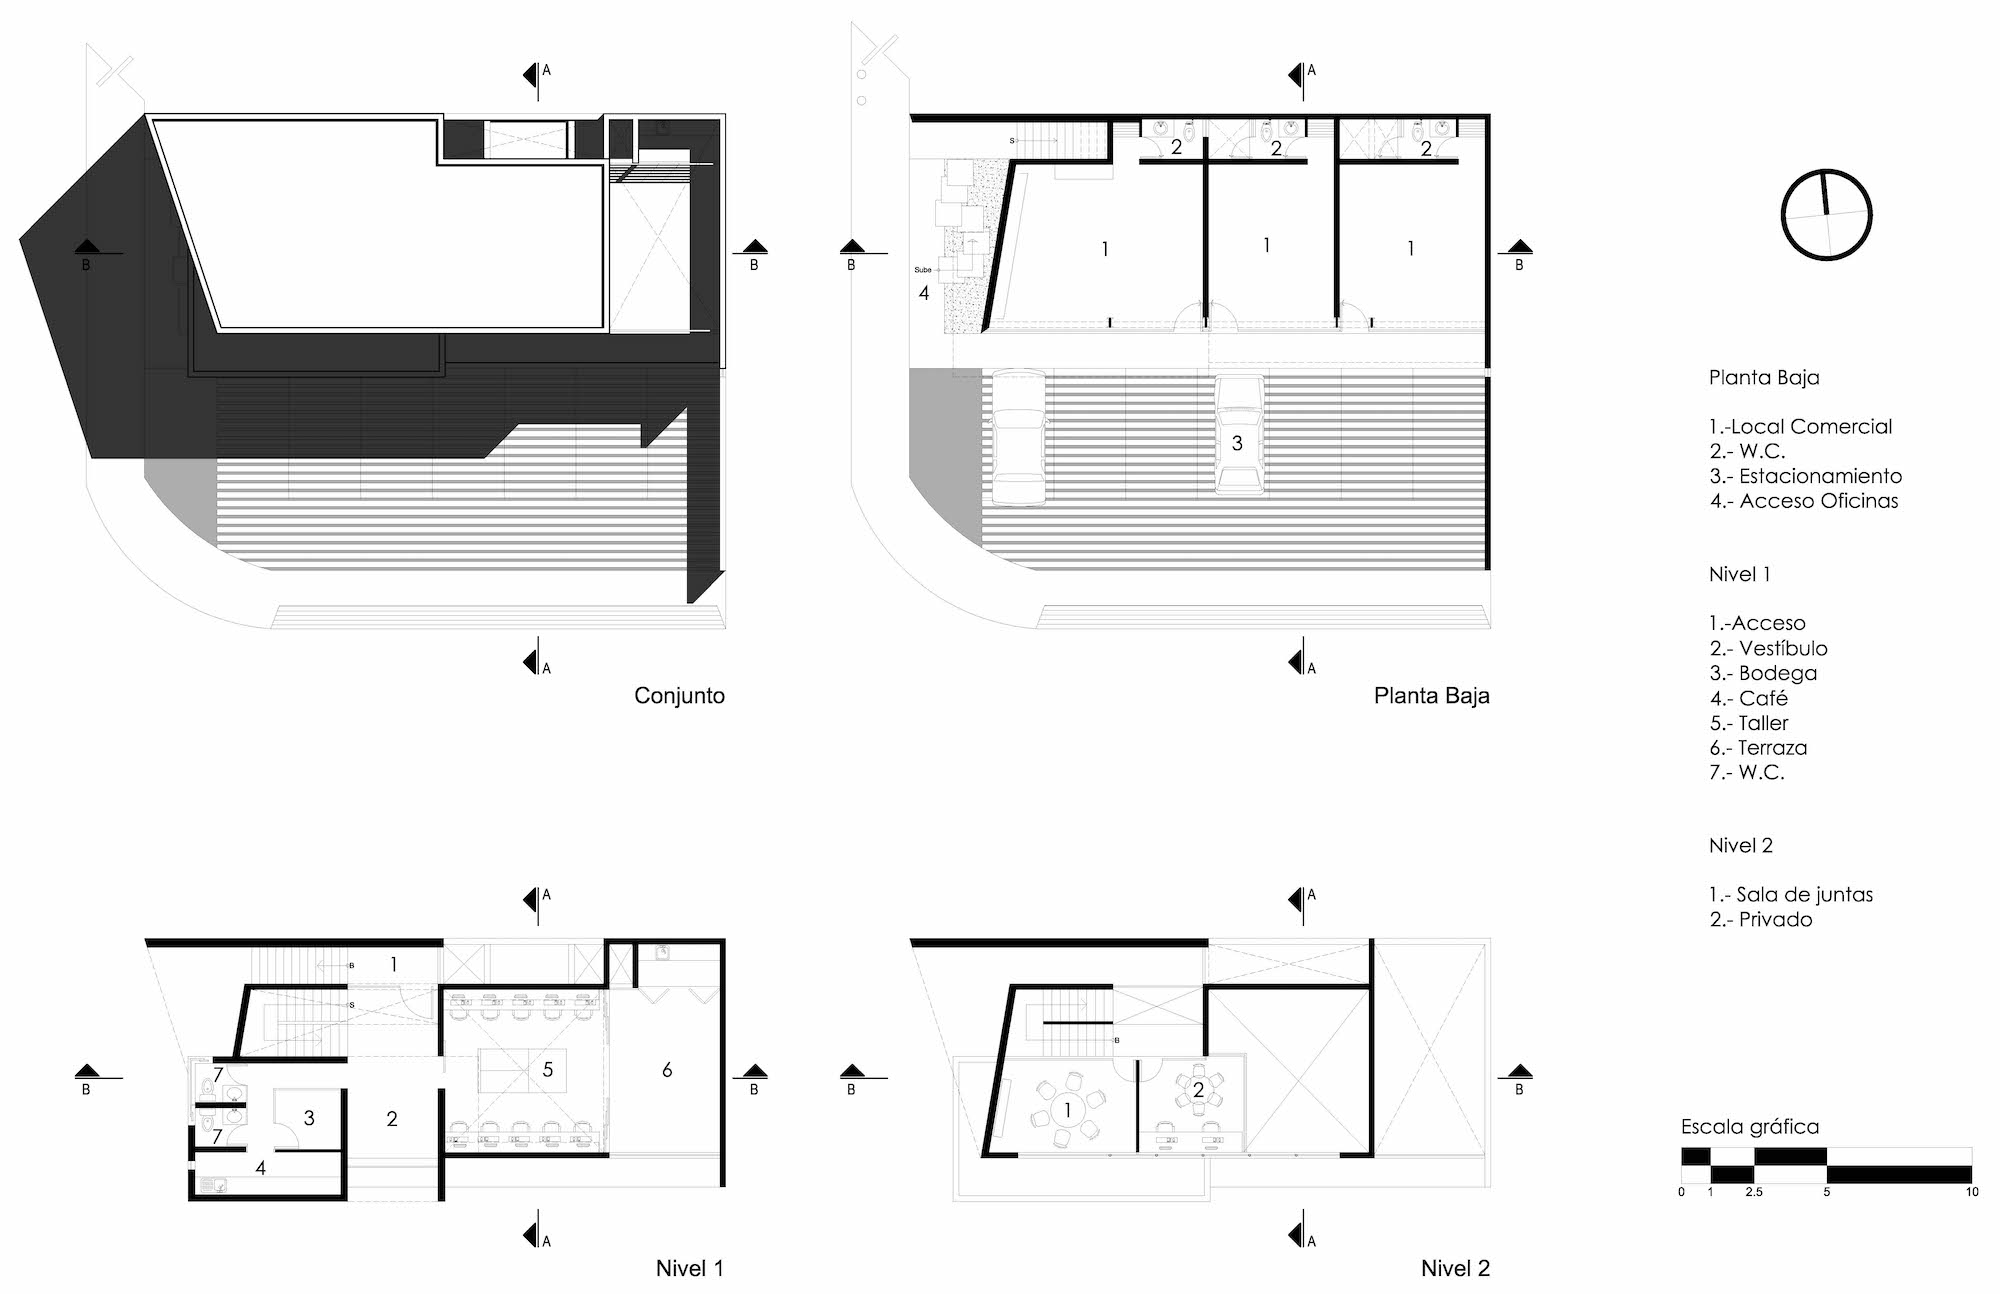 architectural plans for an office building